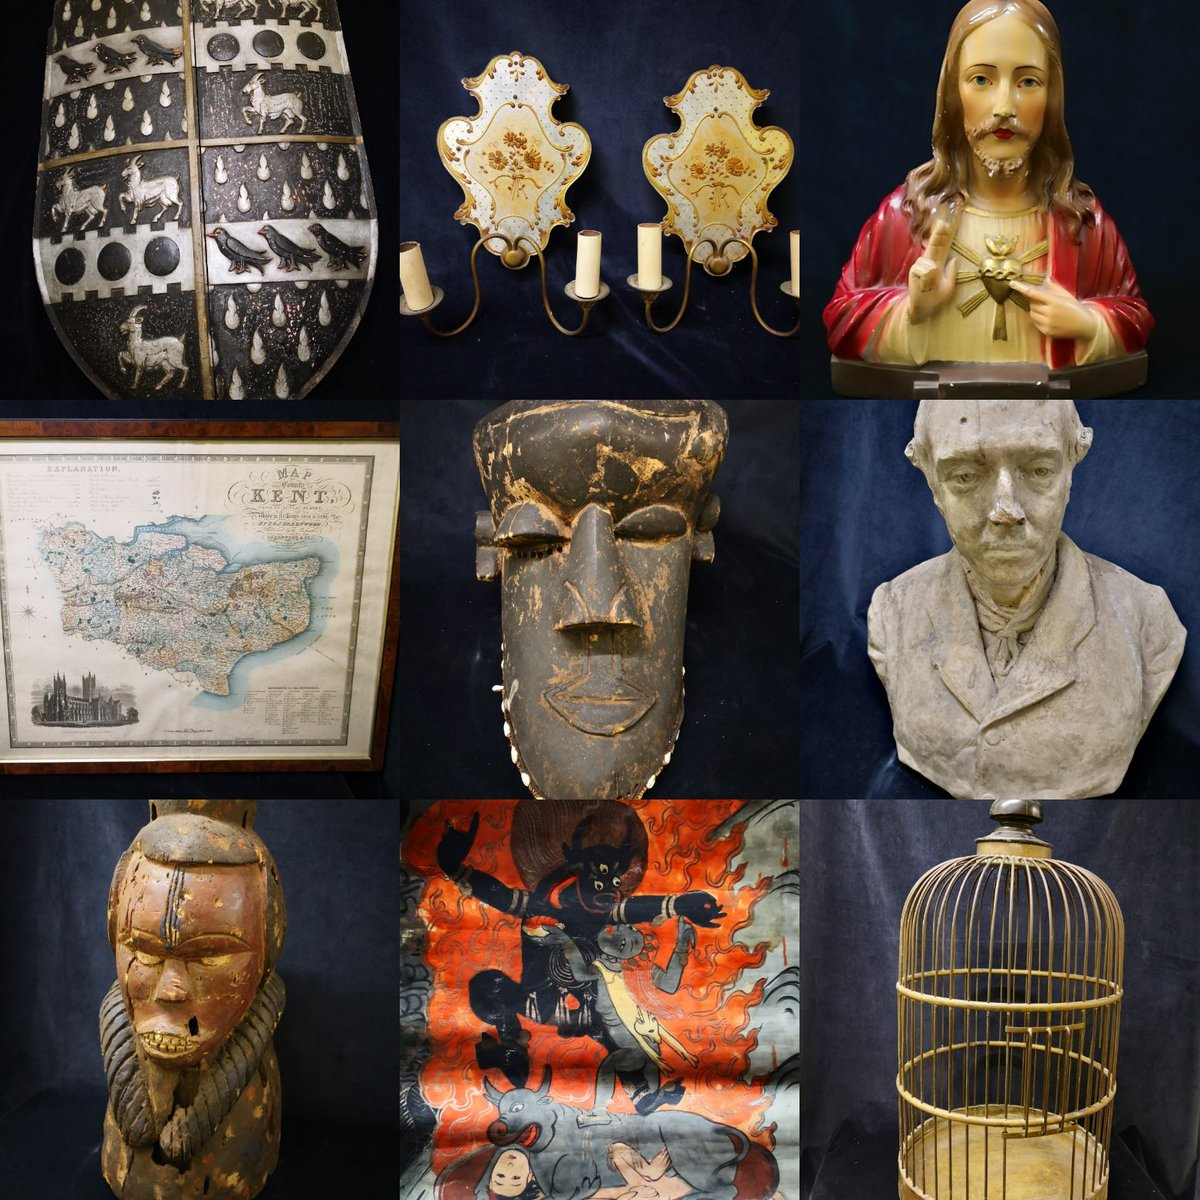 RT @AntiqueFletcher: Lots of #antique and #vintage decorative items coming on line today. #freshstock https://t.co/AKZhDgeNtR